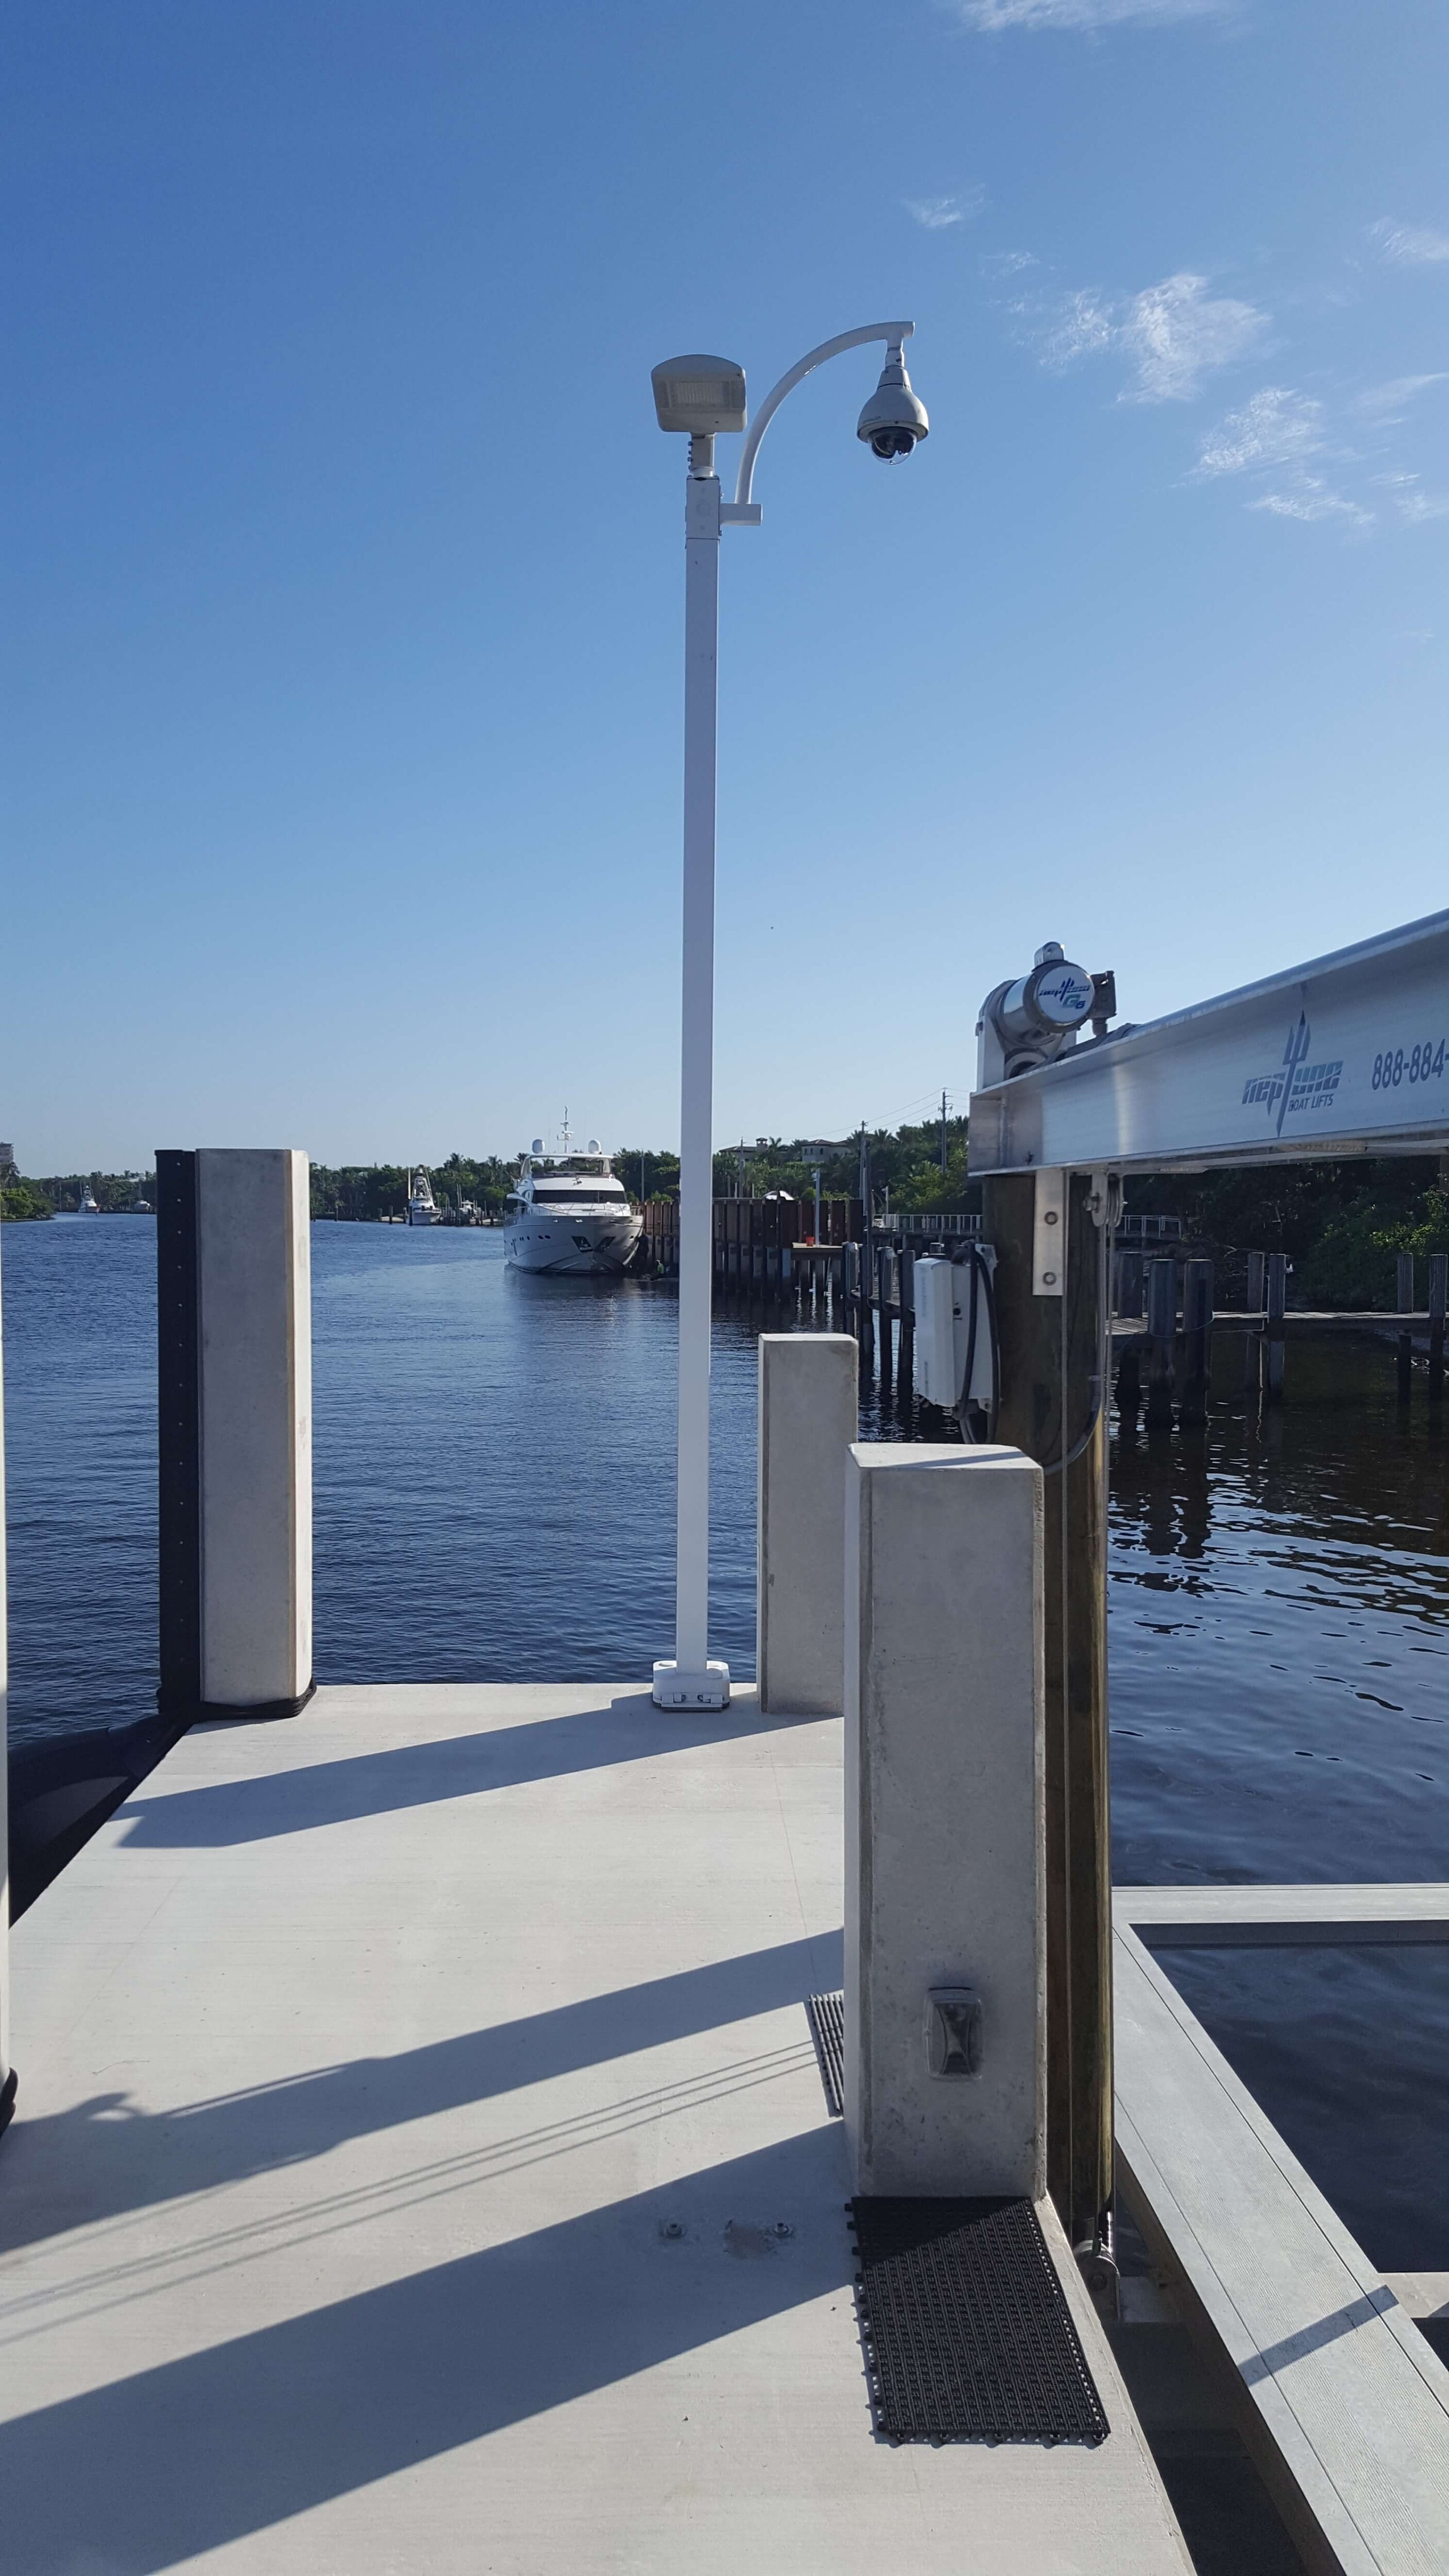 customer pic at dock area 1 2813x5000 - We here at StrongPoles.com like it when customers share their pictures with us.